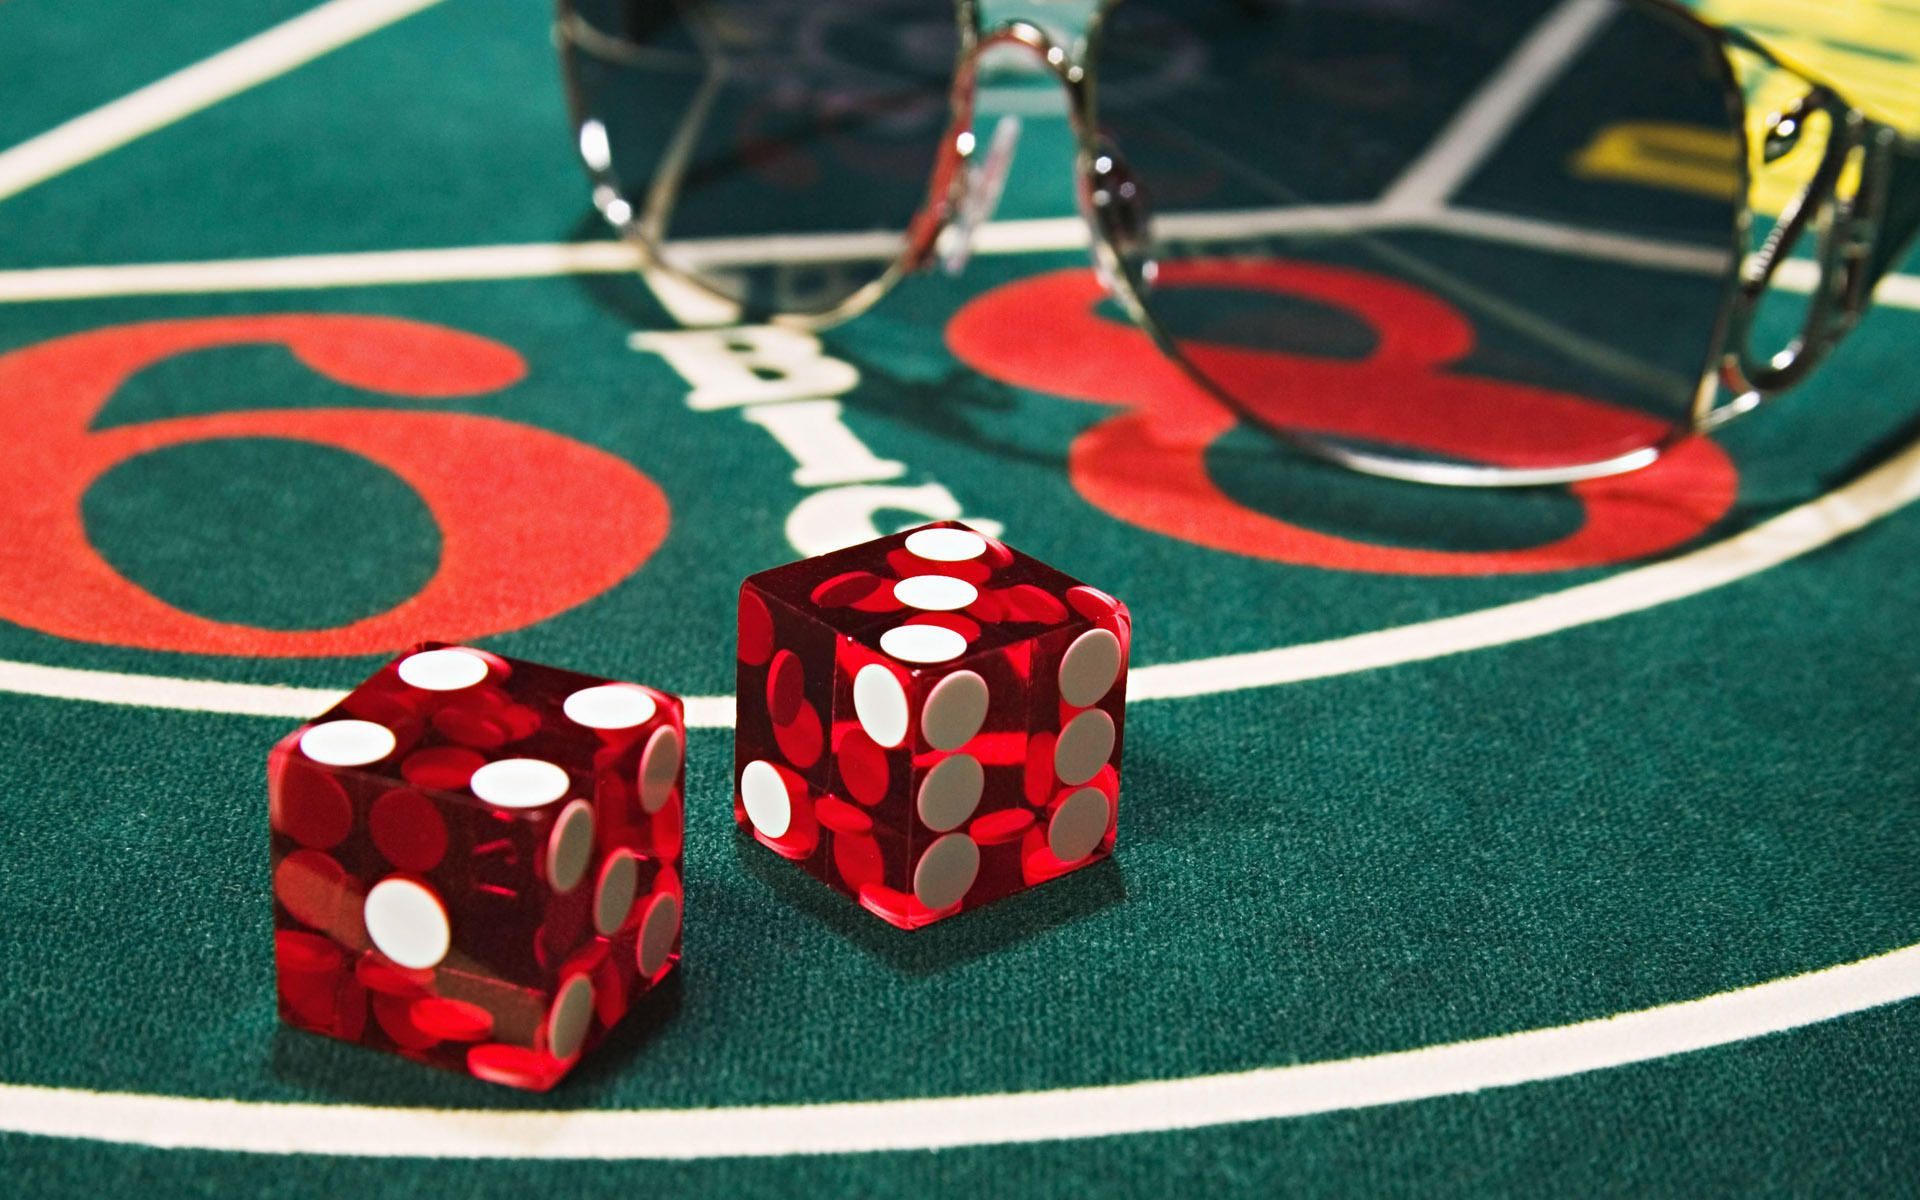 Casino Game Hardly Ever Seen, But That's Why It Is Wanted